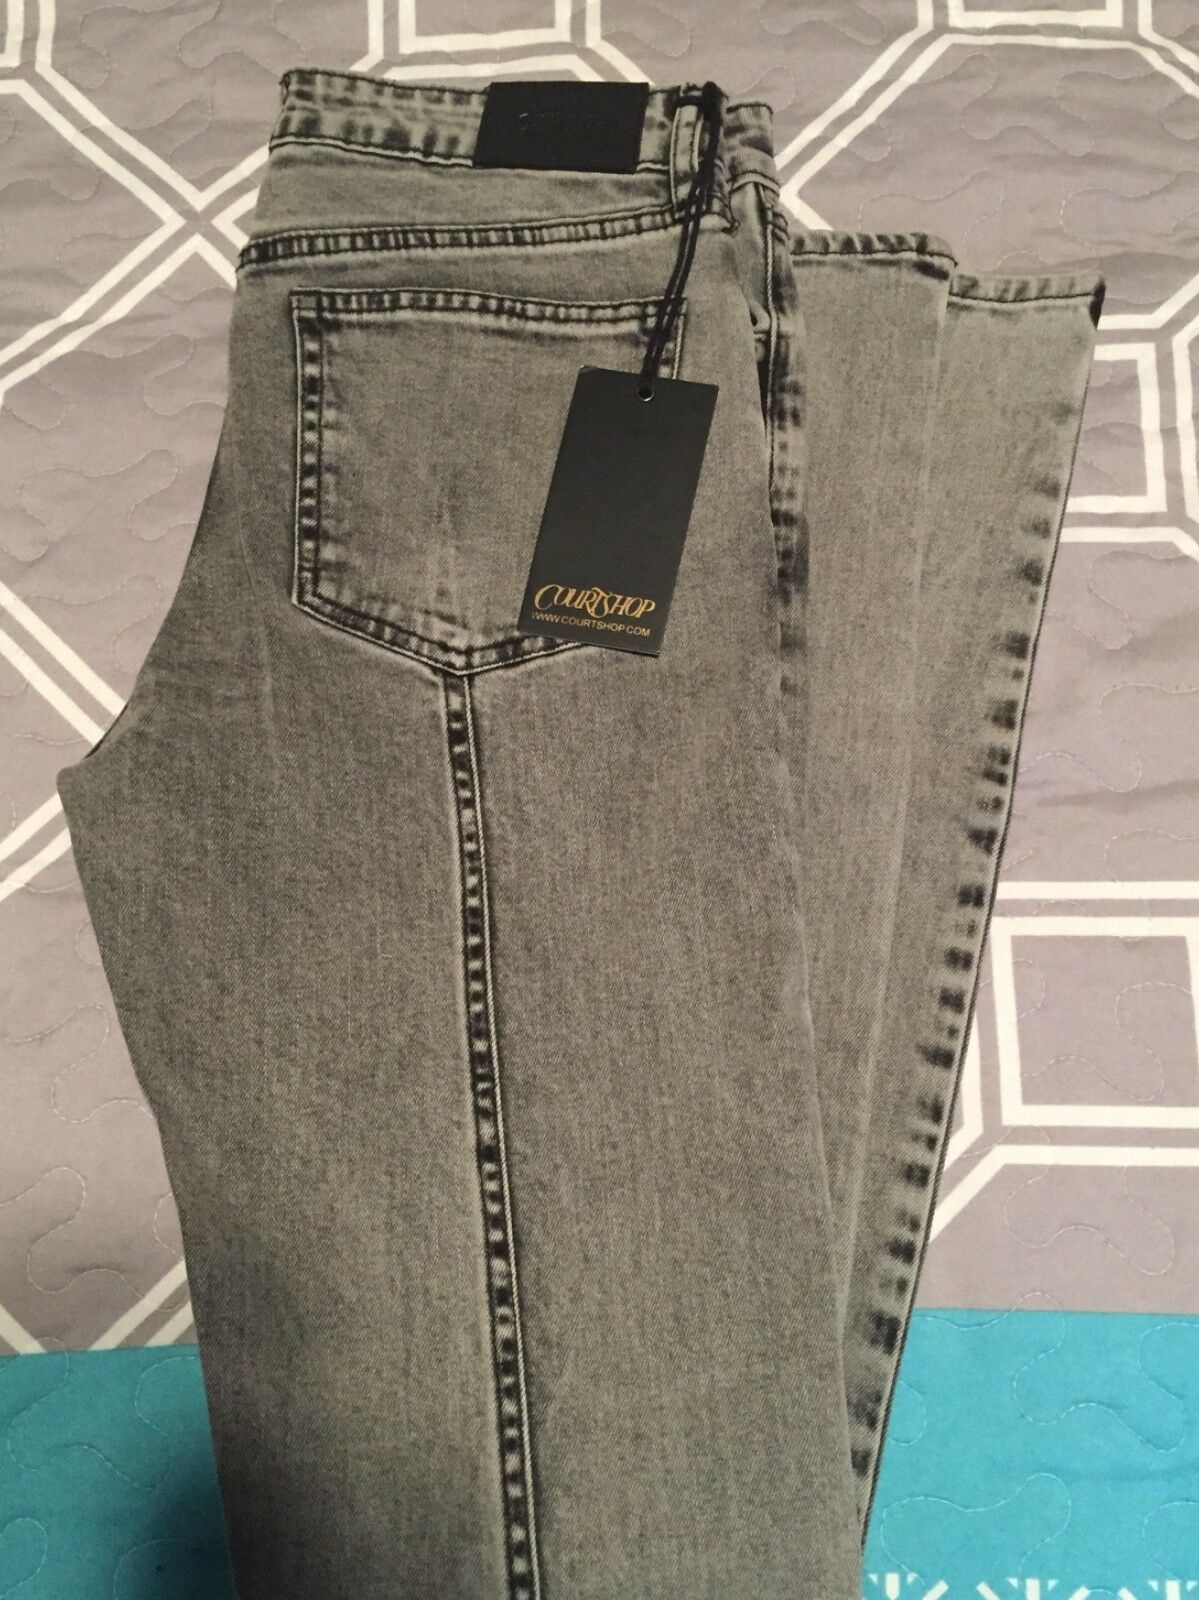 Courtshop jeans martine lite acid size 27